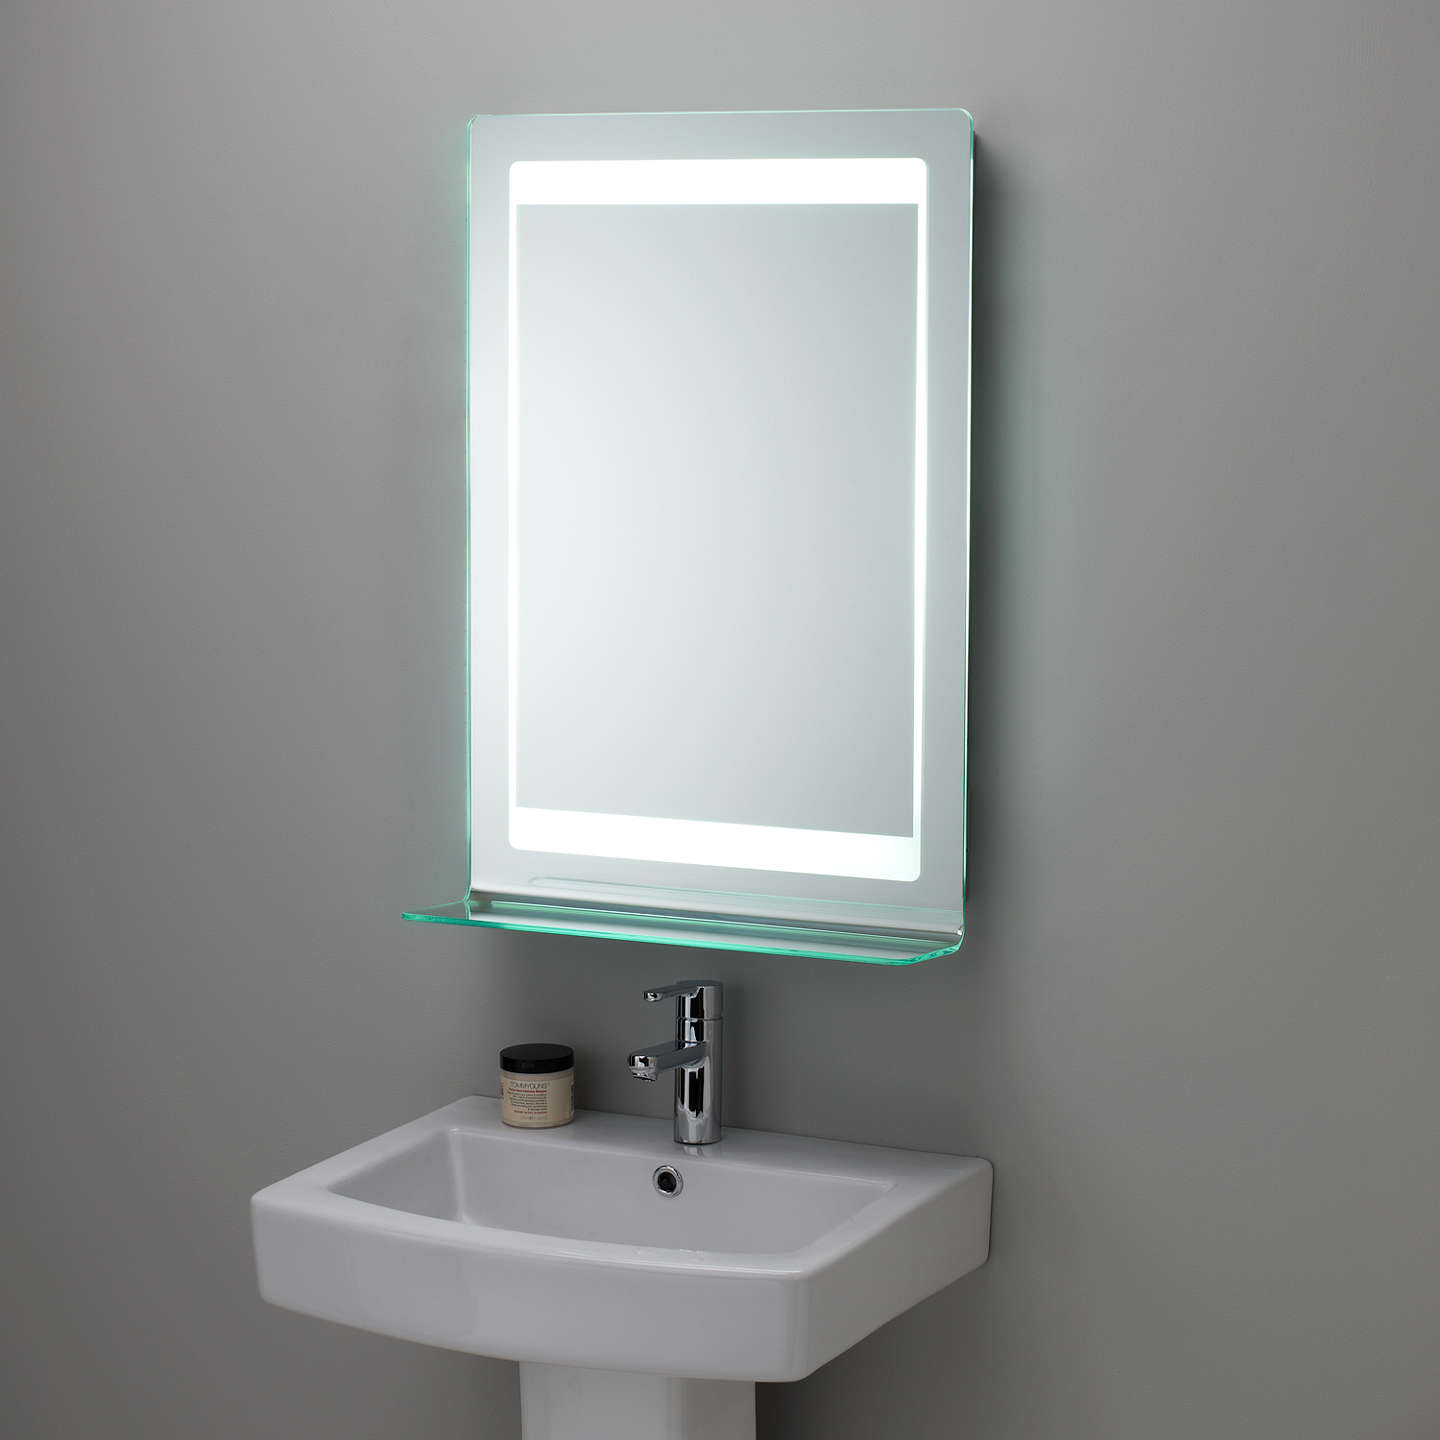 mirrors bathroom scene roper gamma backlit bathroom mirror at lewis 13700